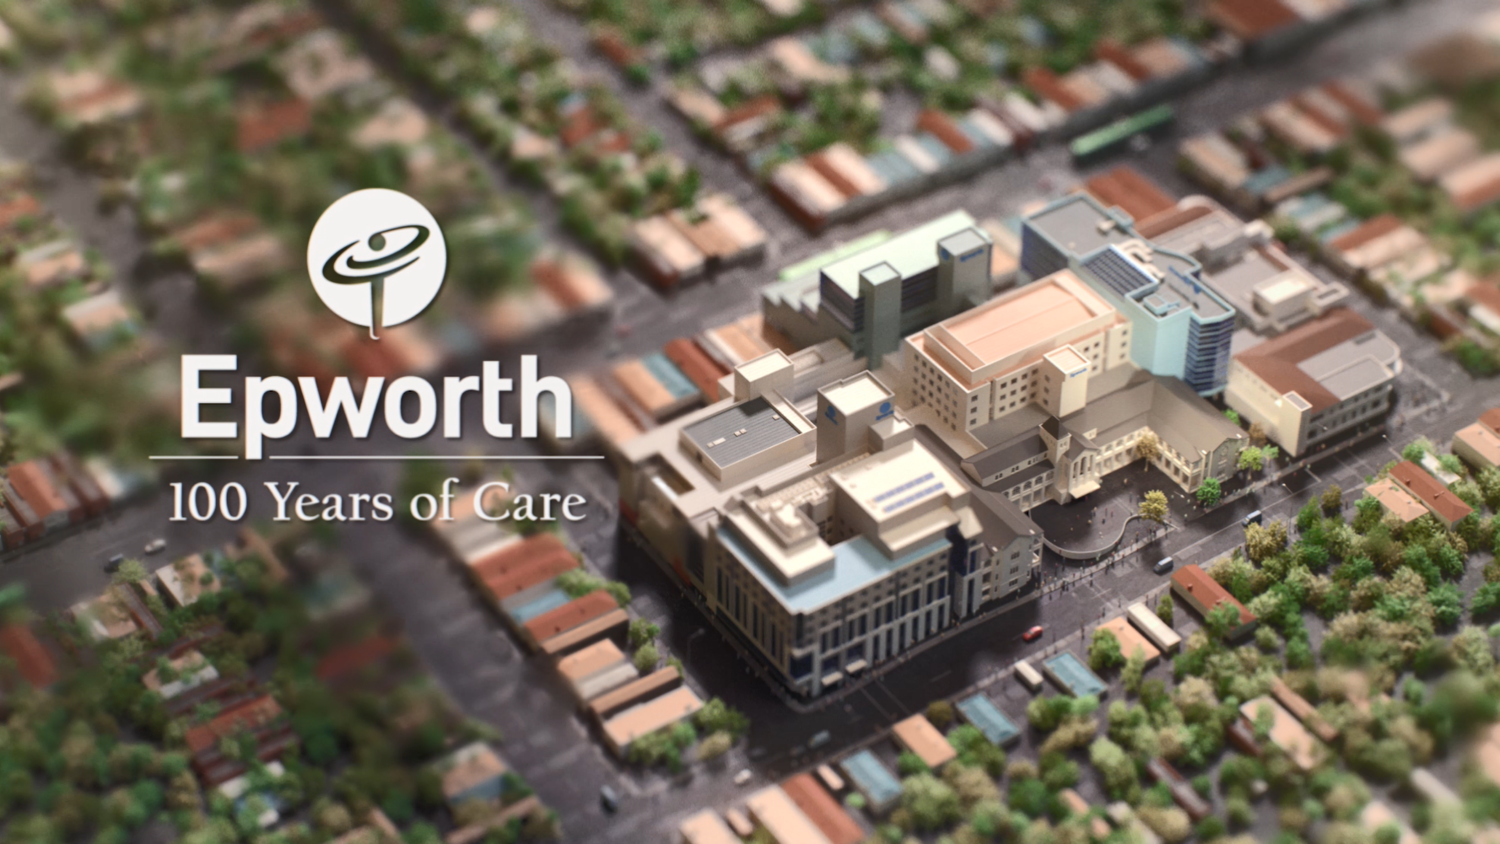 Watch Epworth's documentary